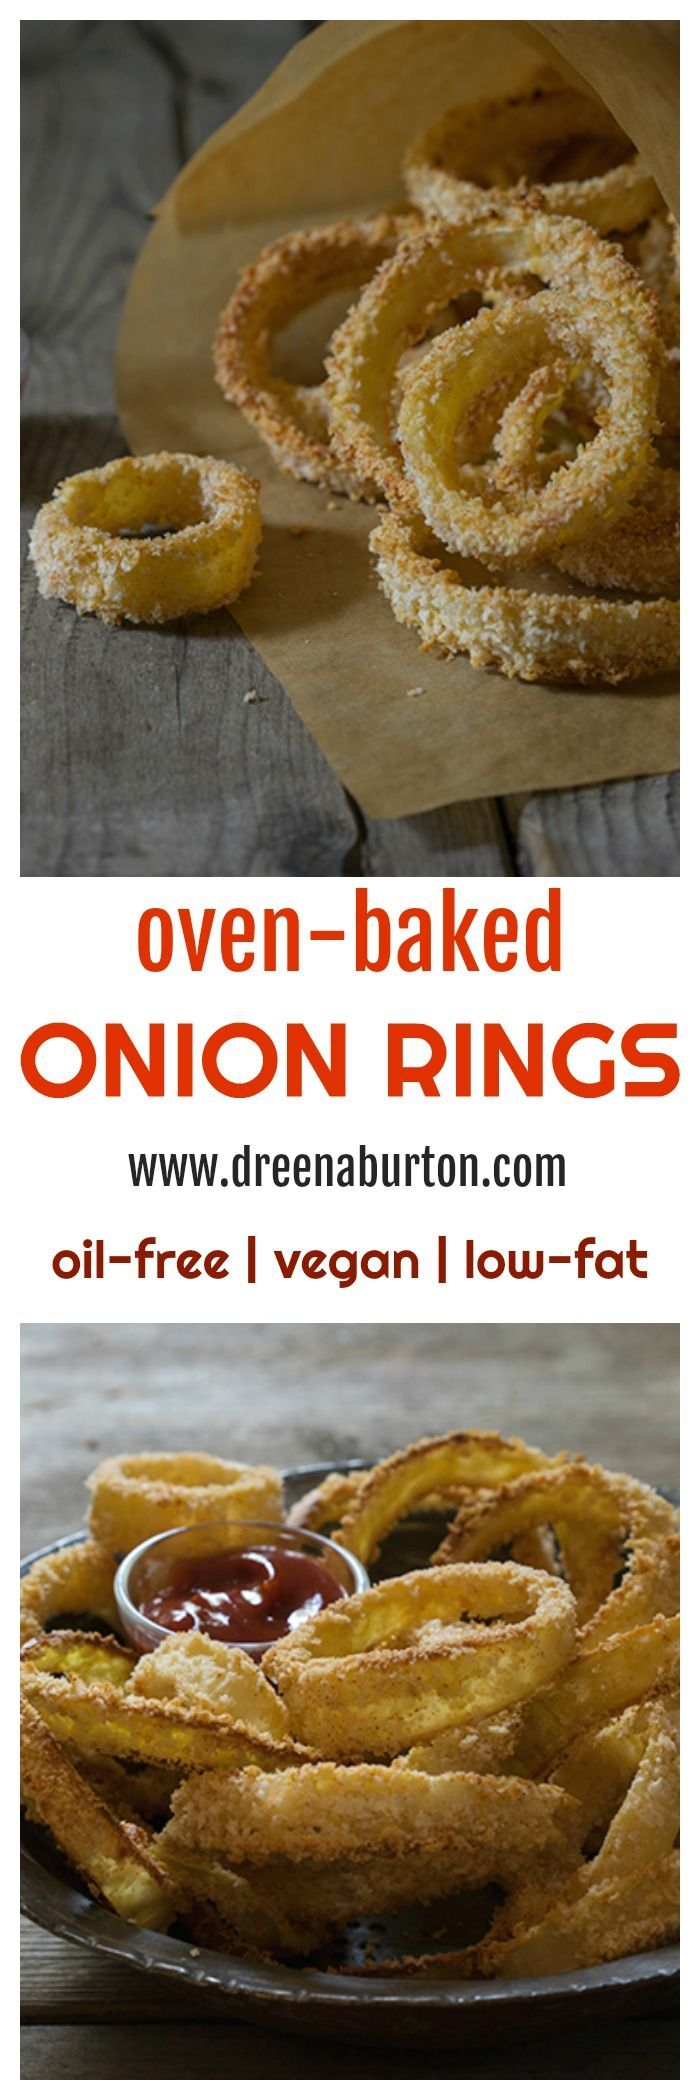 OVEN-BAKED ONION RINGS! Irresistibly crispy and delicious - vegan, low-fat, and oil-free! www.dreenaburton.com